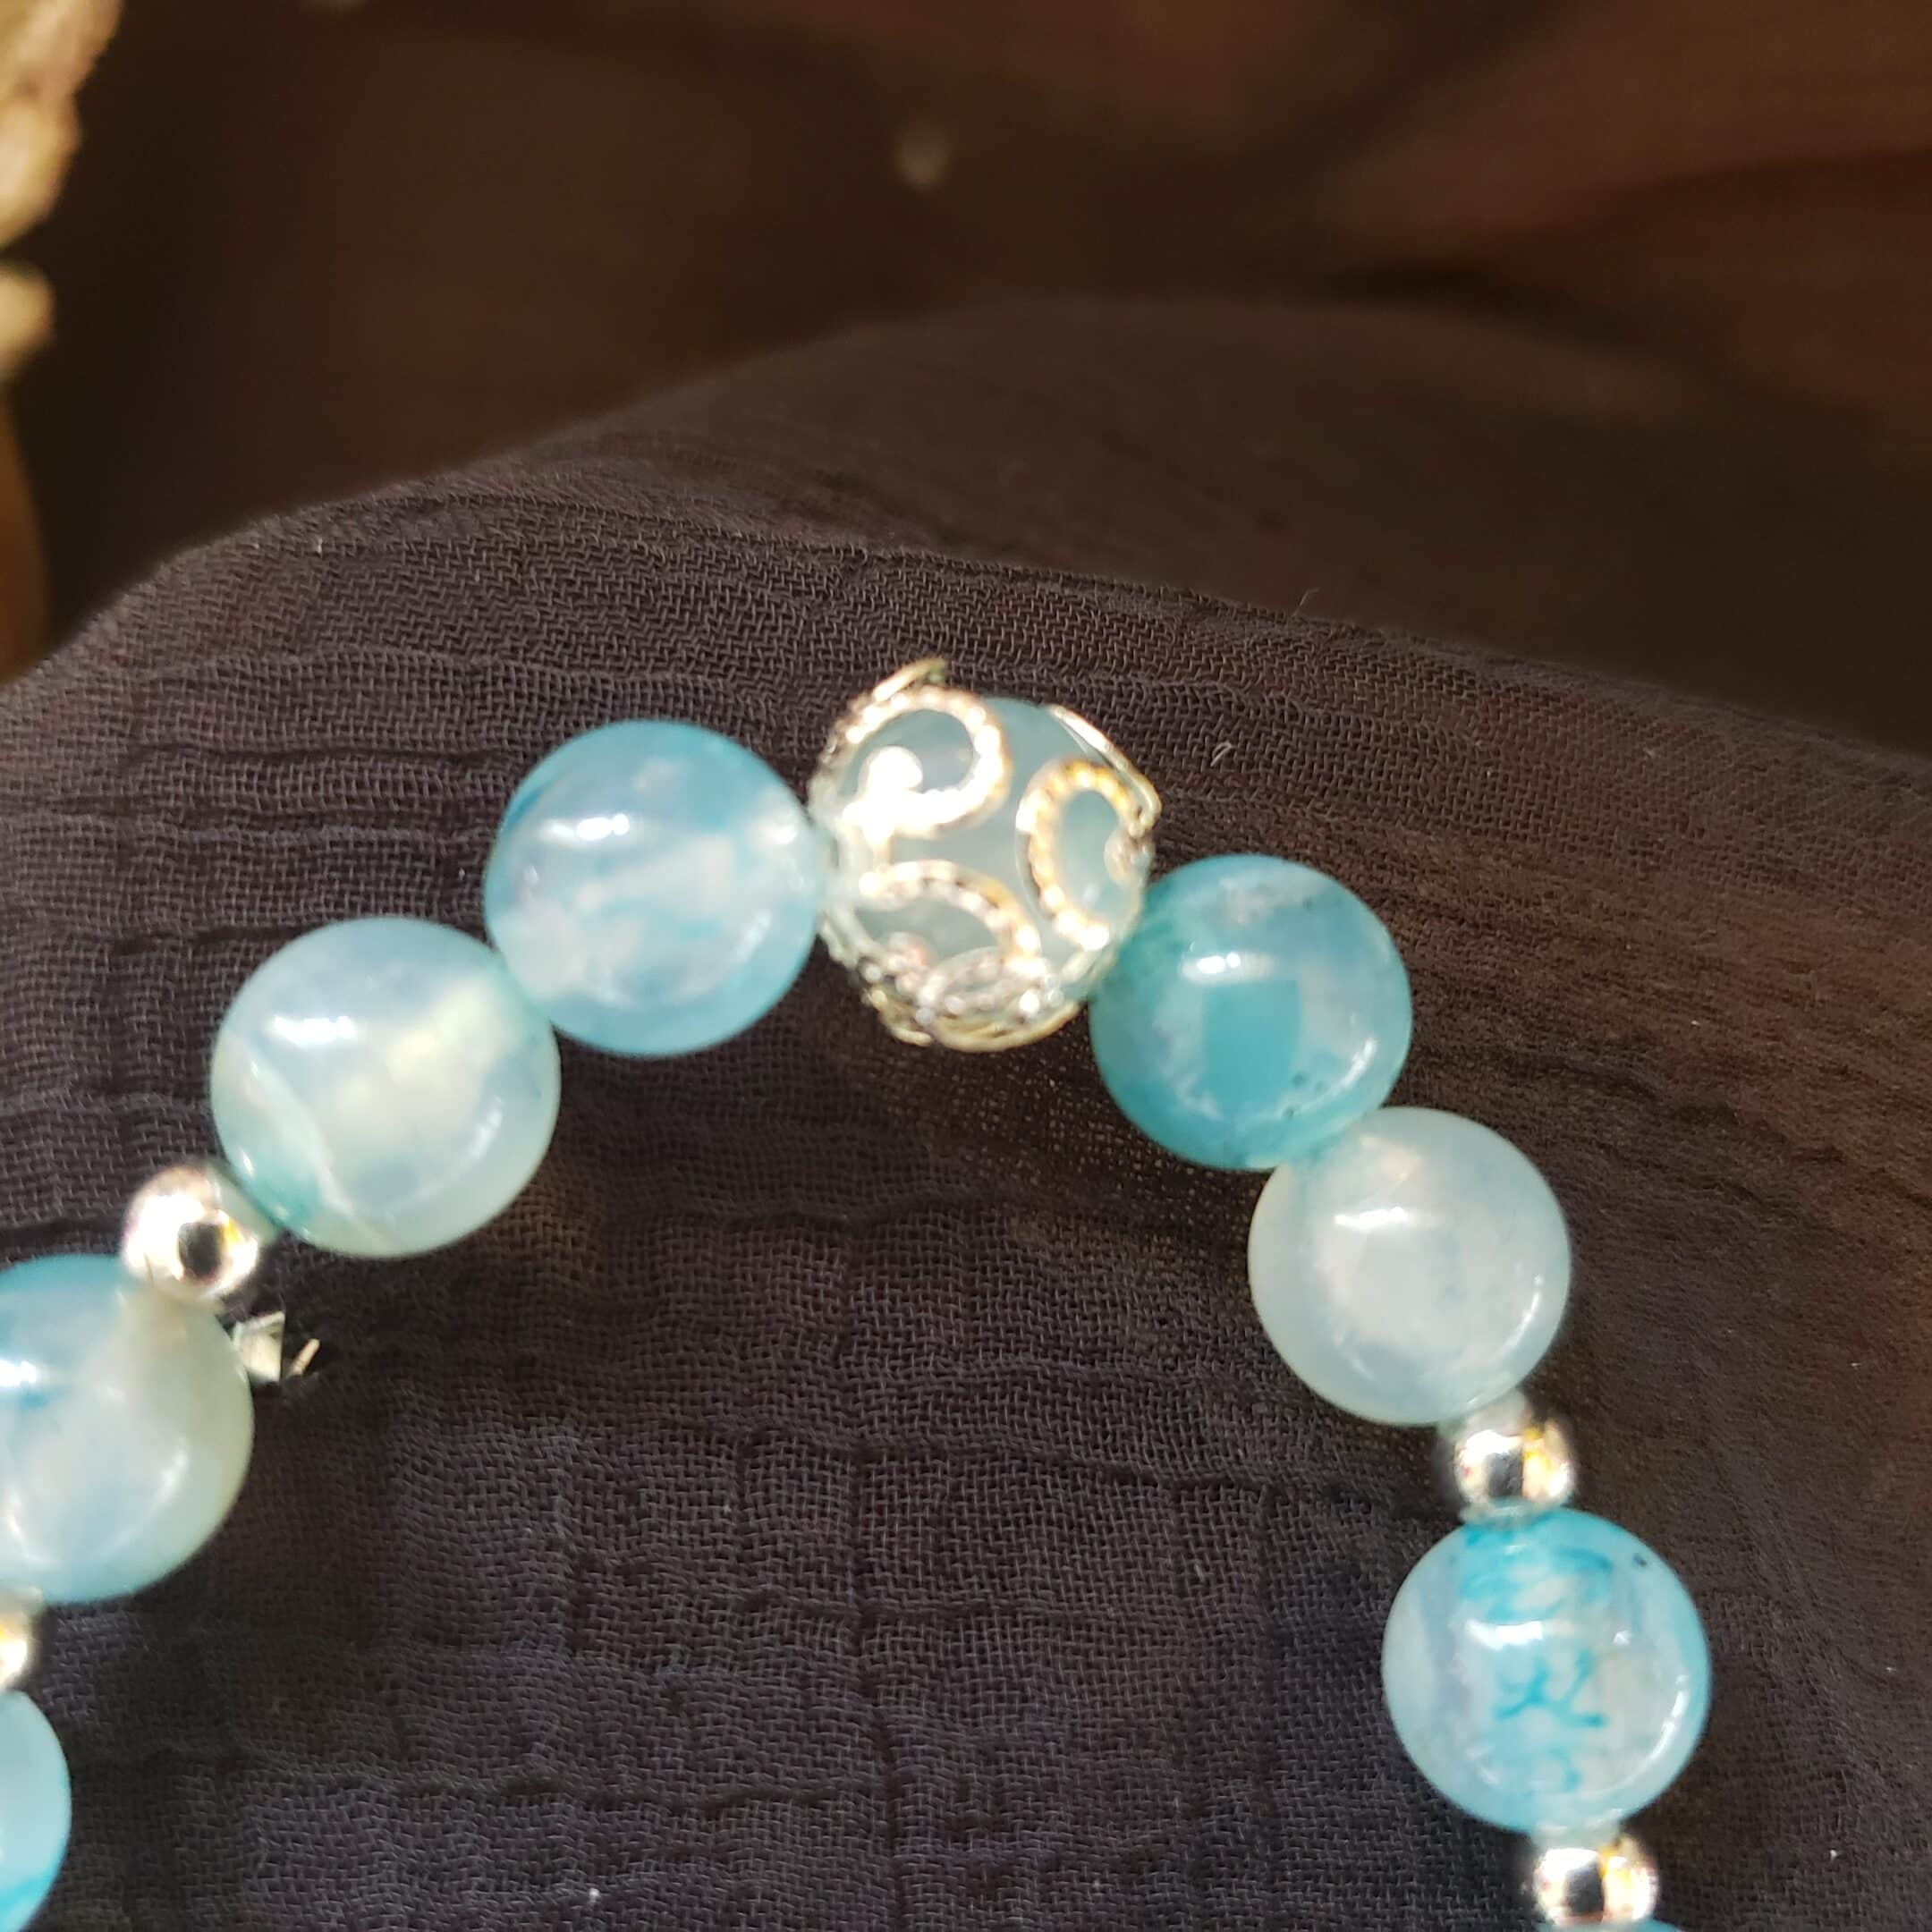 Blue vein agate jewelry